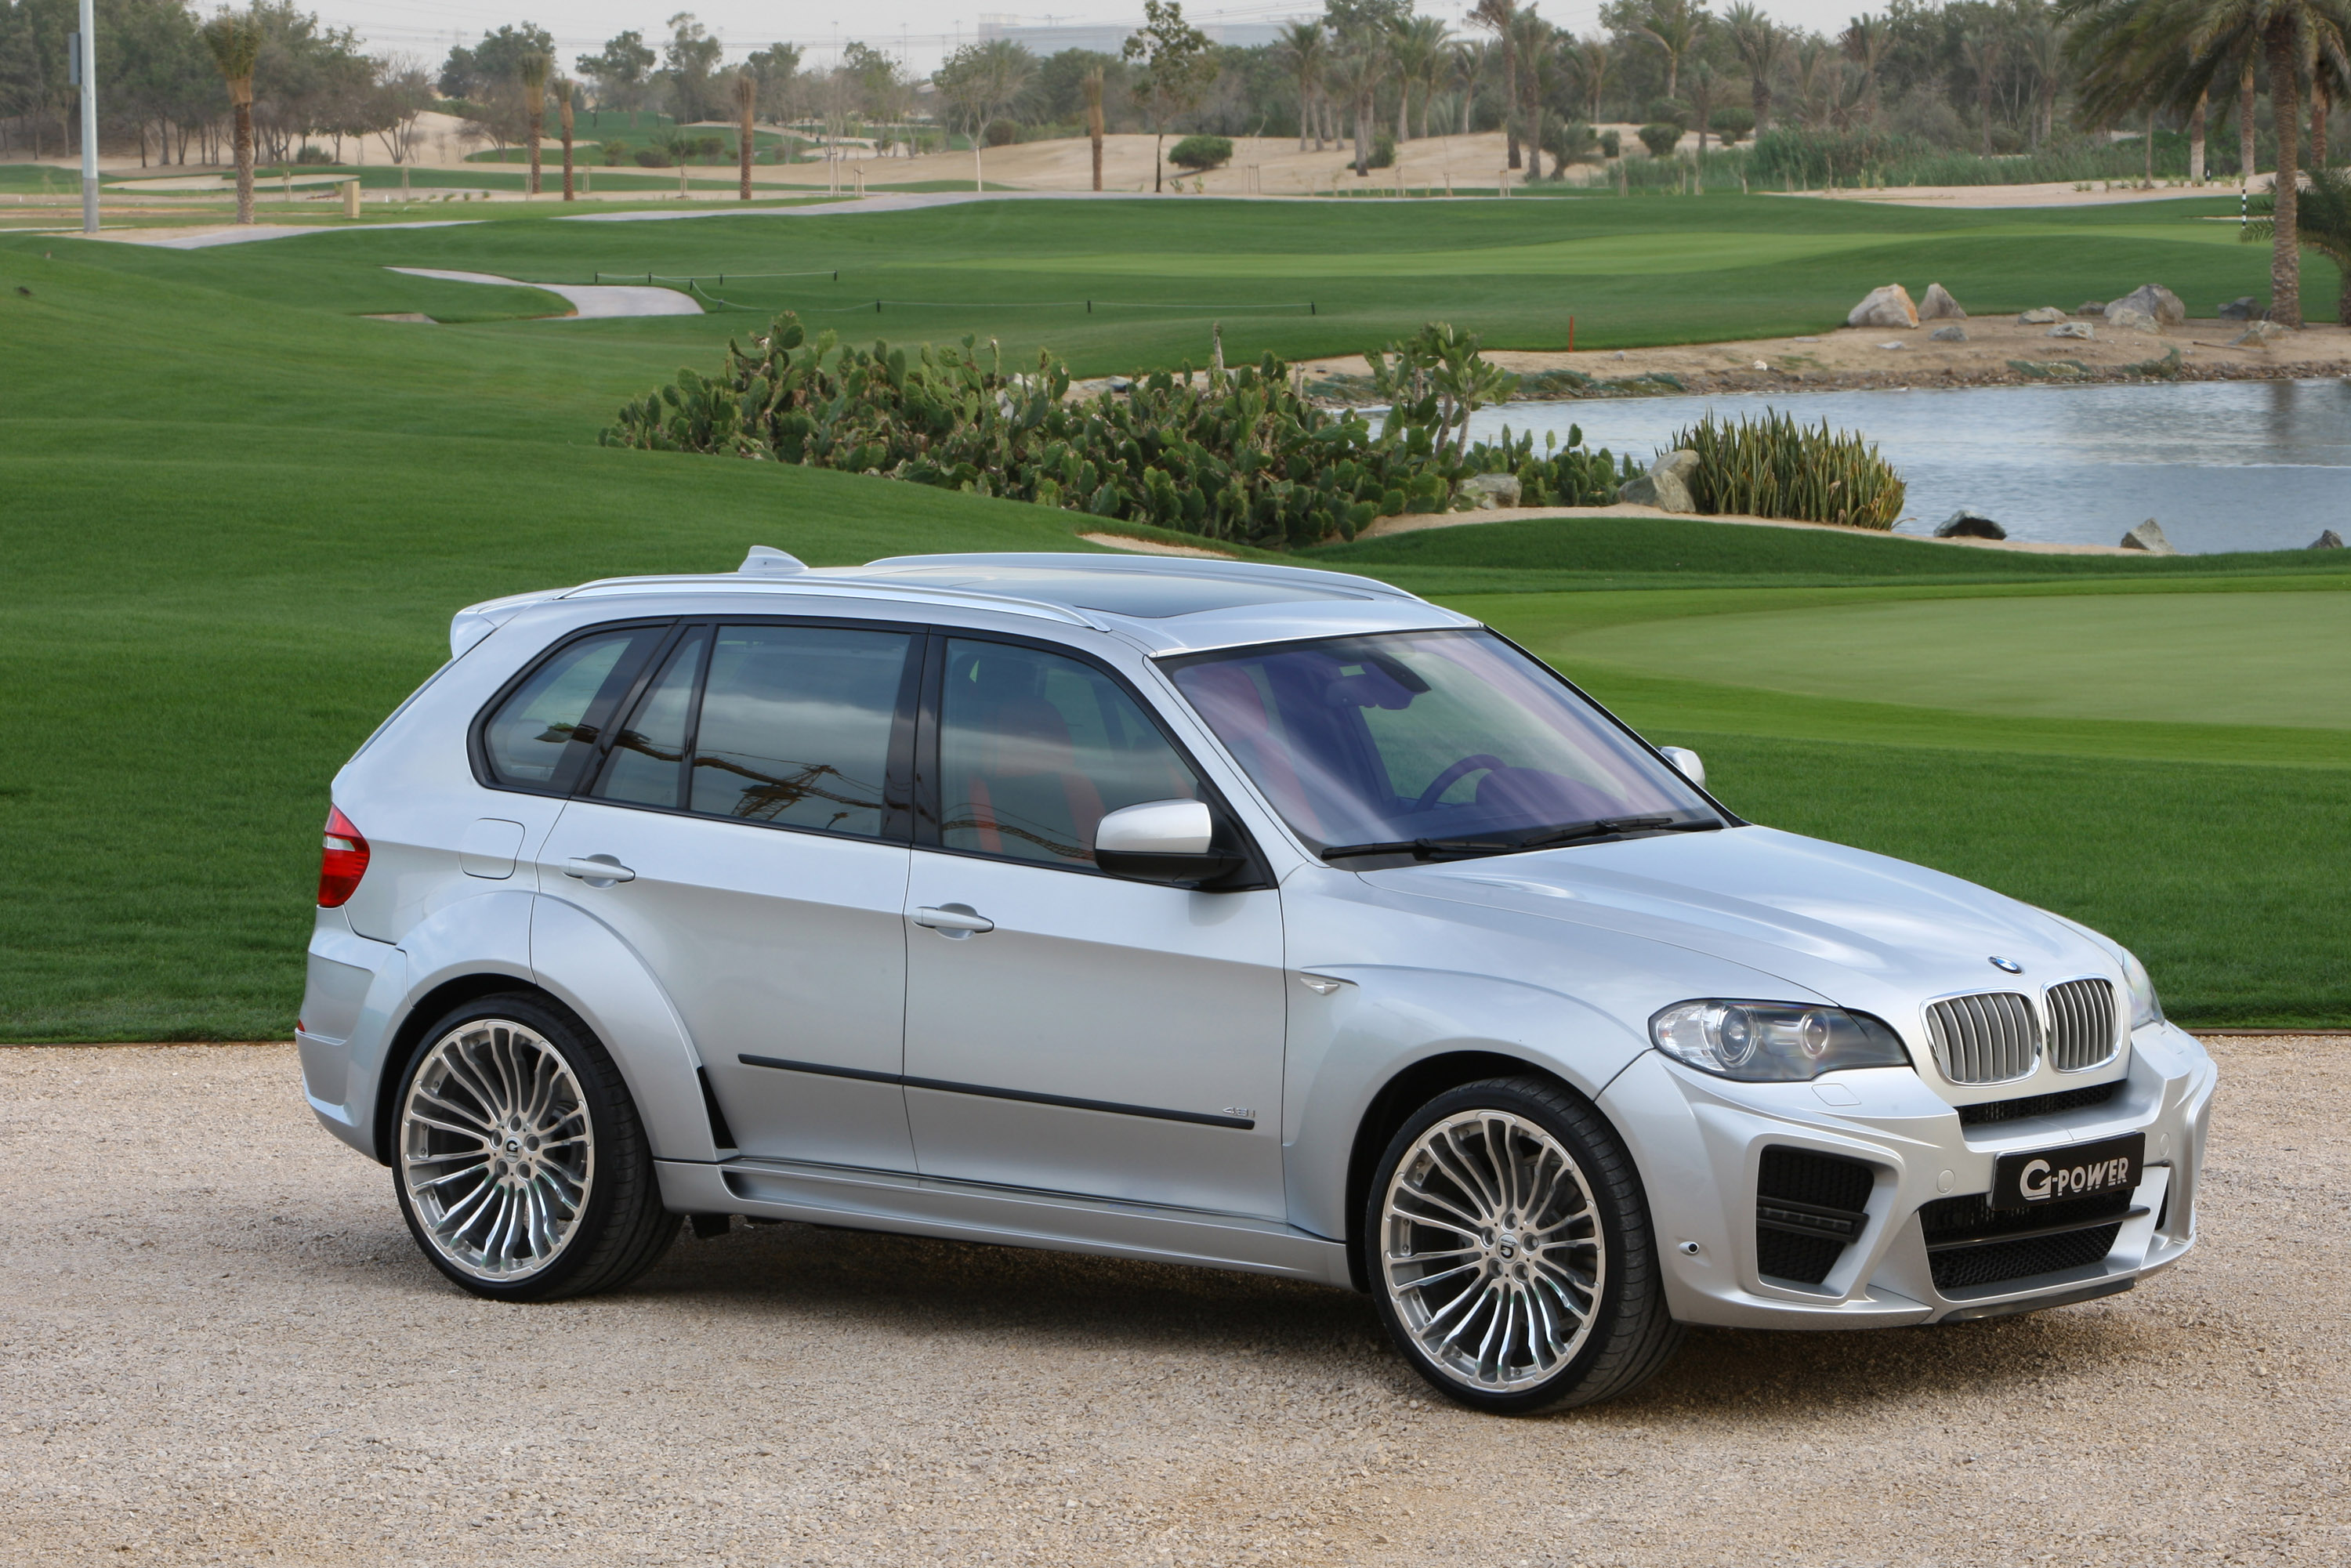 G Power Typhoon Bmw X5 Picture 17503